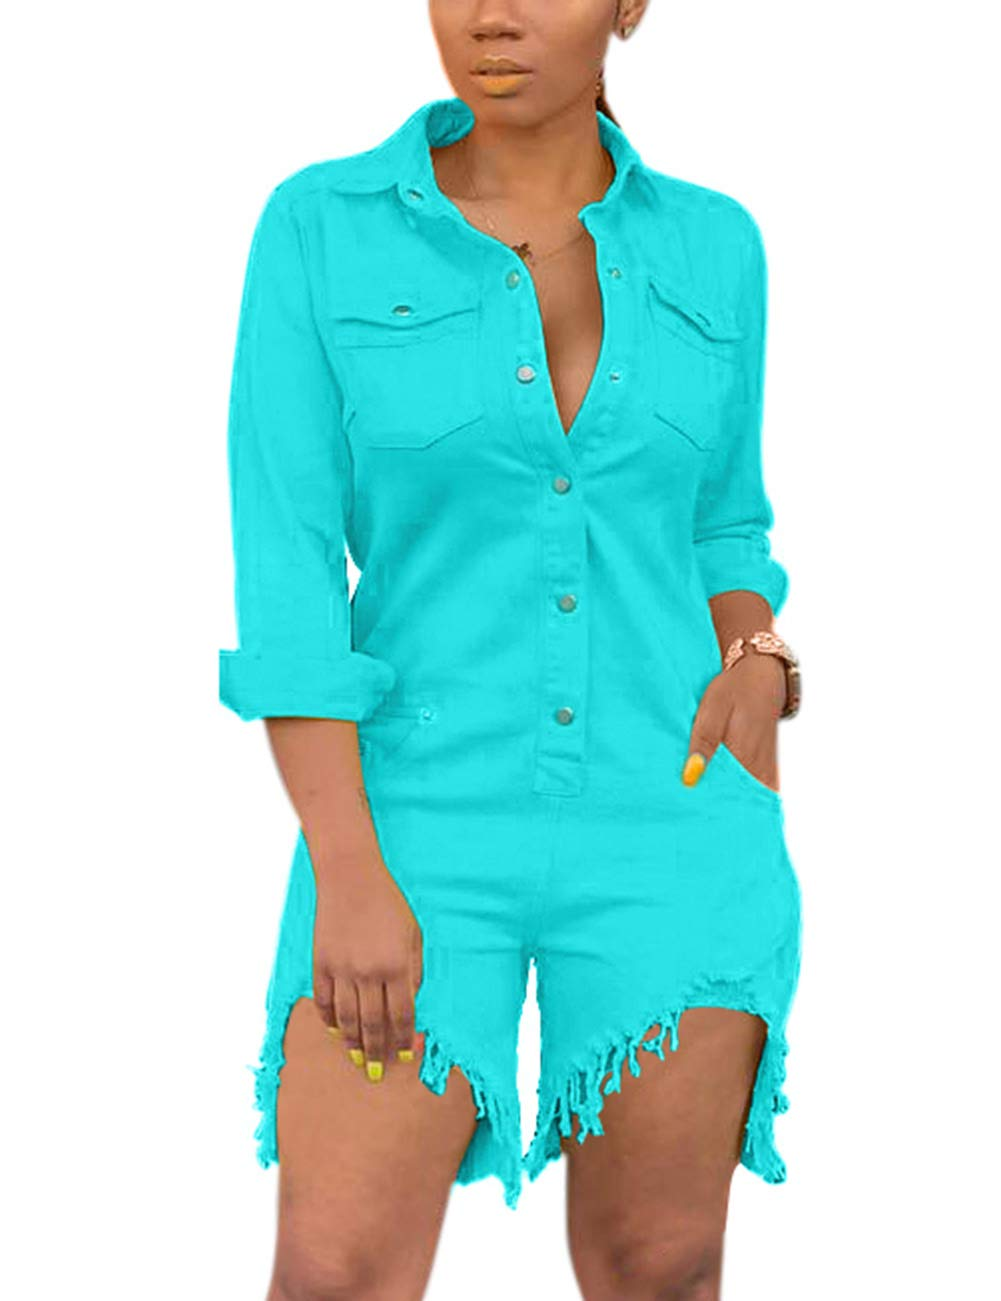 Desirepath Womens Solid Color Button Jumpsuits Long Sleeve Summer Short Rompers with Pocket Blue